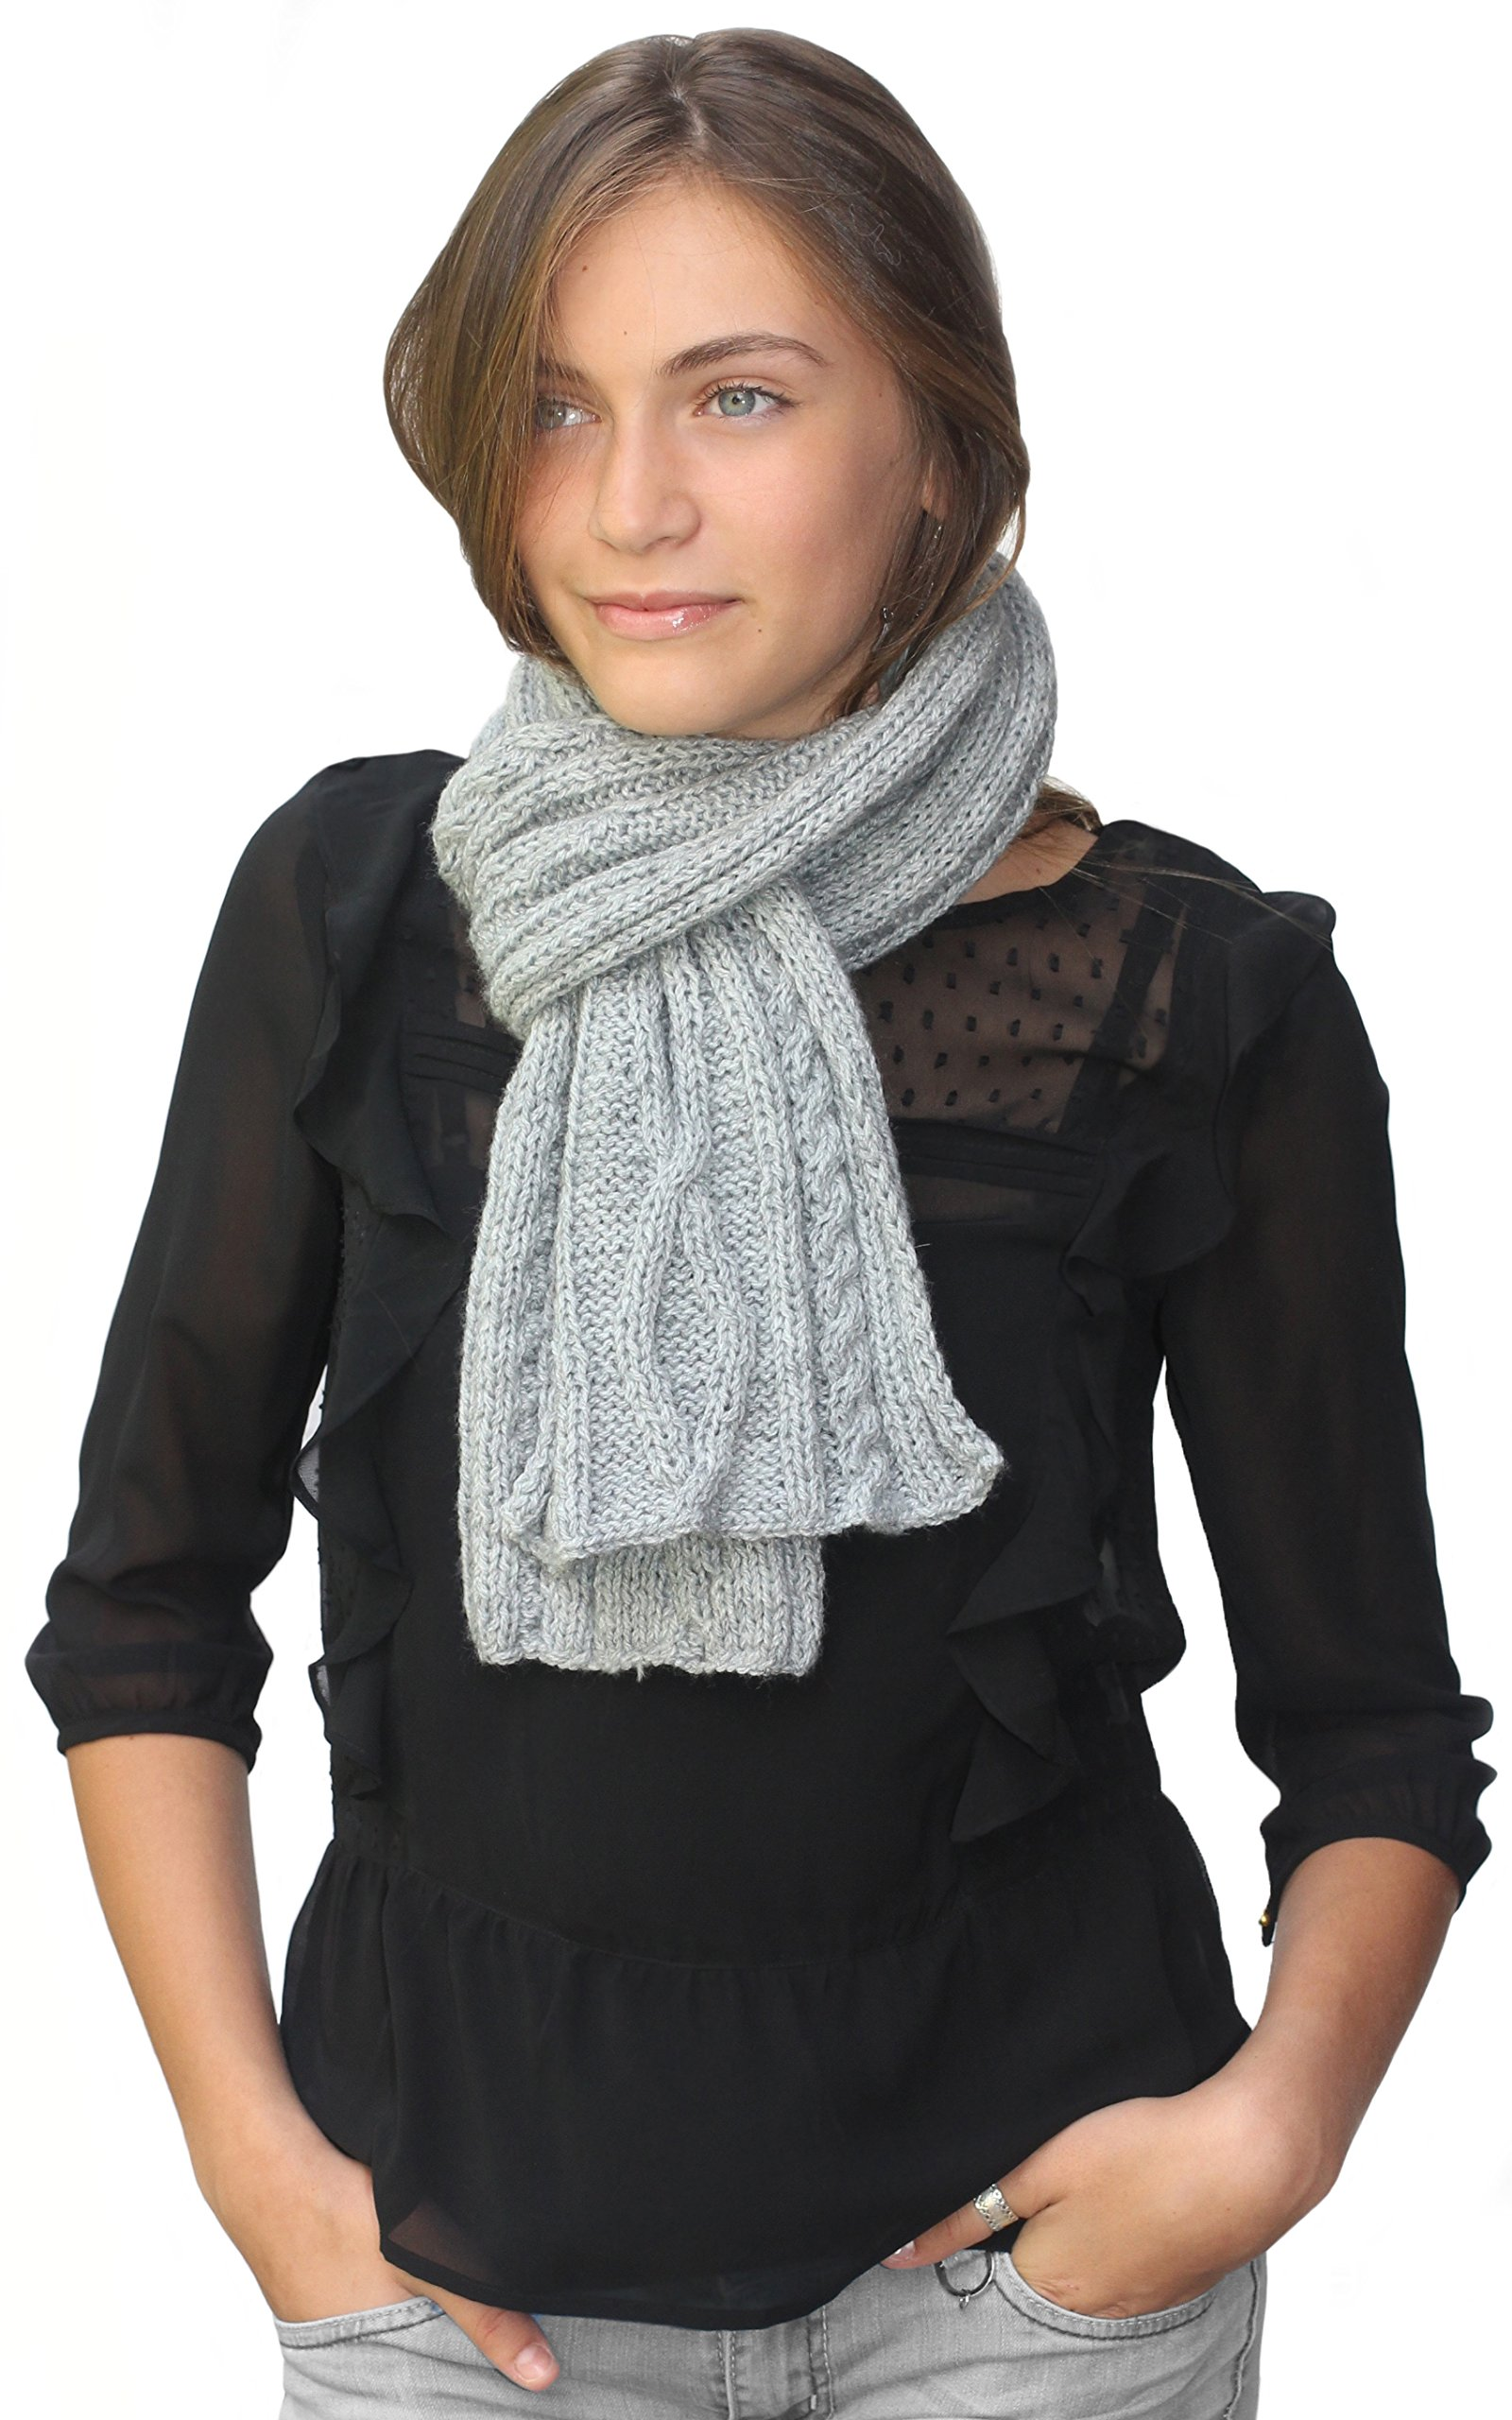 Handmade Knitted by Hand Alpaca and Wool Scarf - Softest Gray (CUSTOM MADE ORDER) by BARBERY Alpaca Accessories